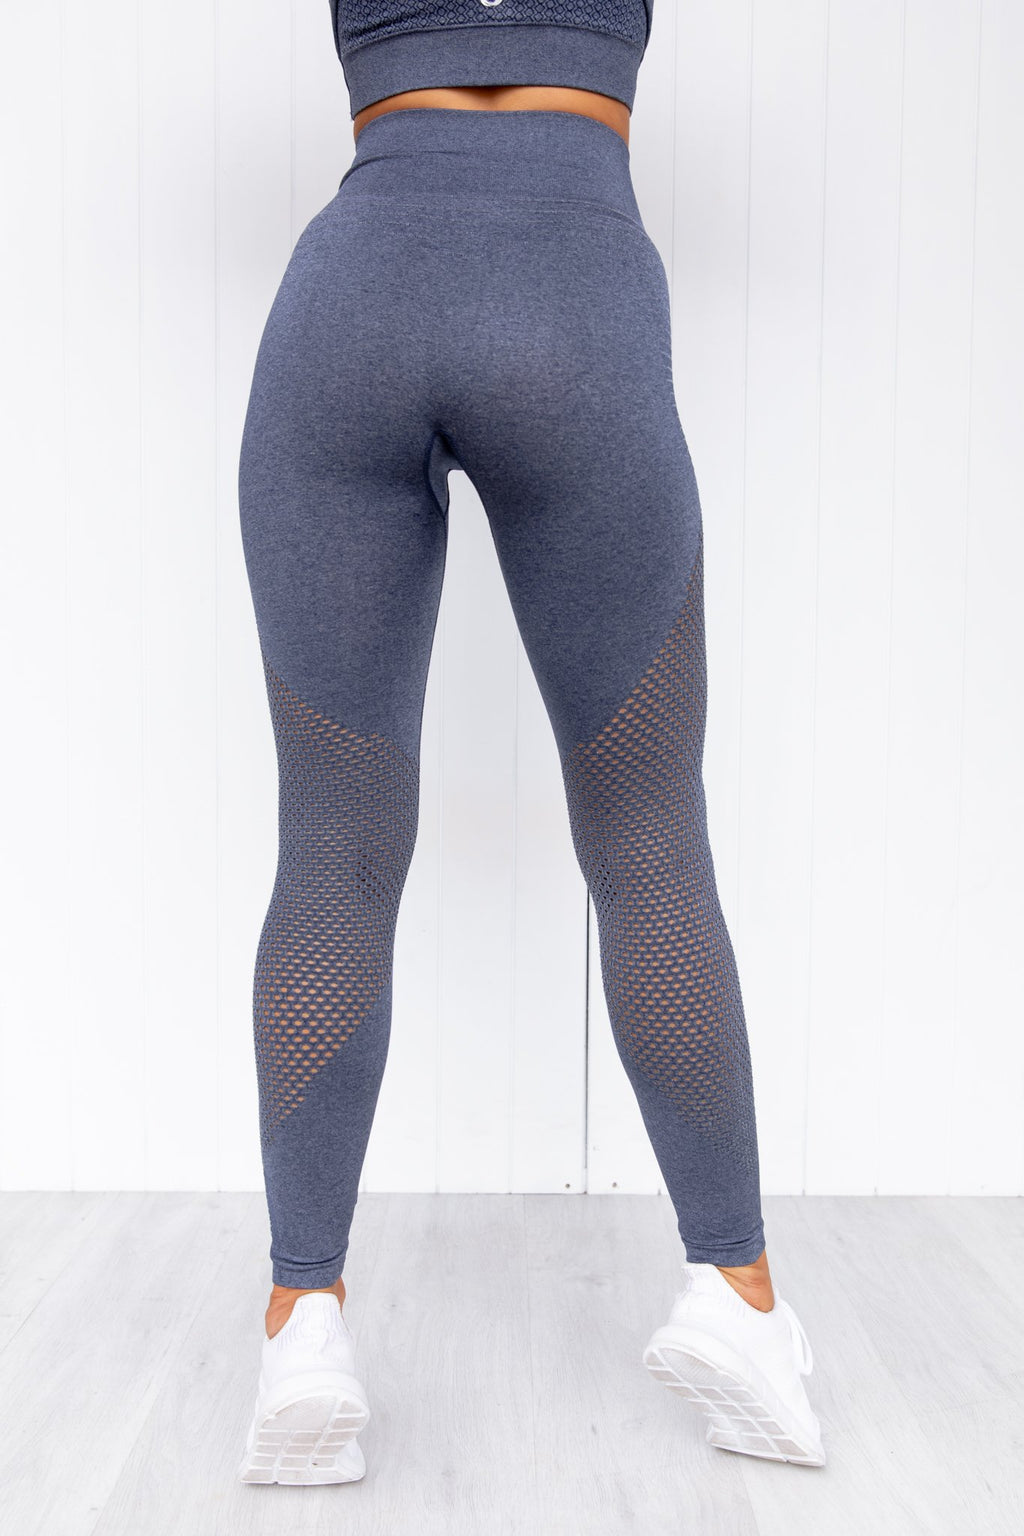 Geo Seamless High Waisted Leggings - Navy - PURE DASH